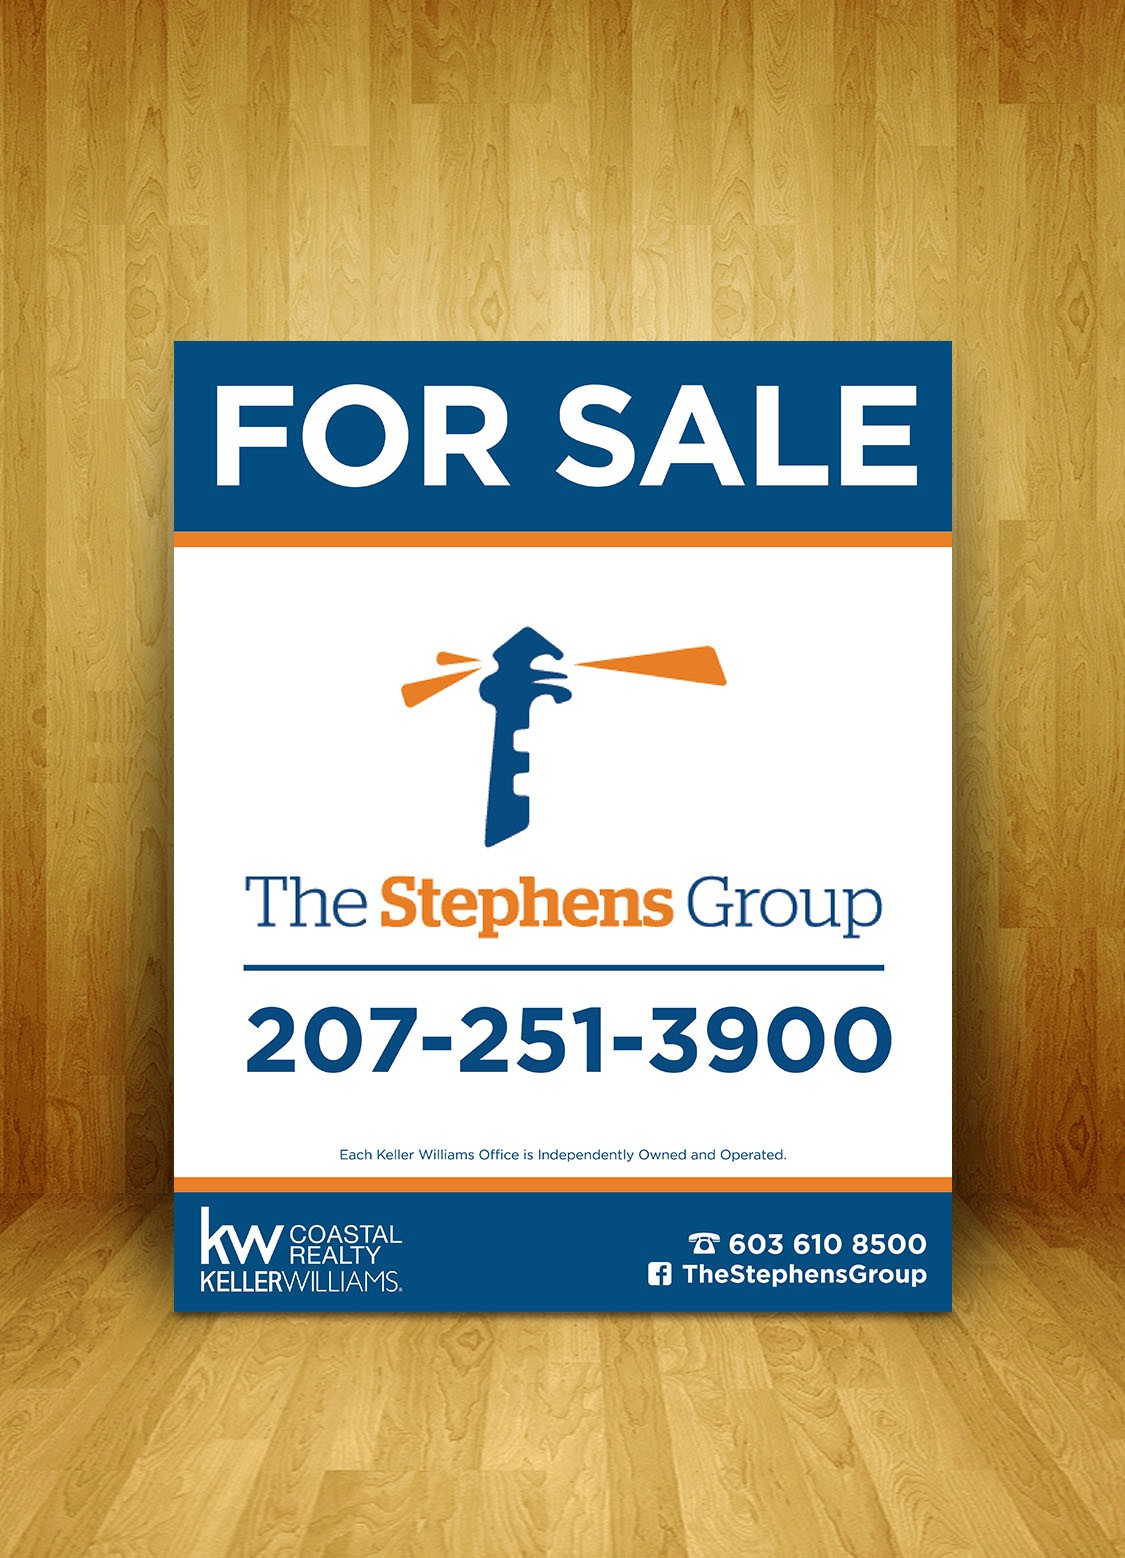 Design a real estate sign for The Stephens Group